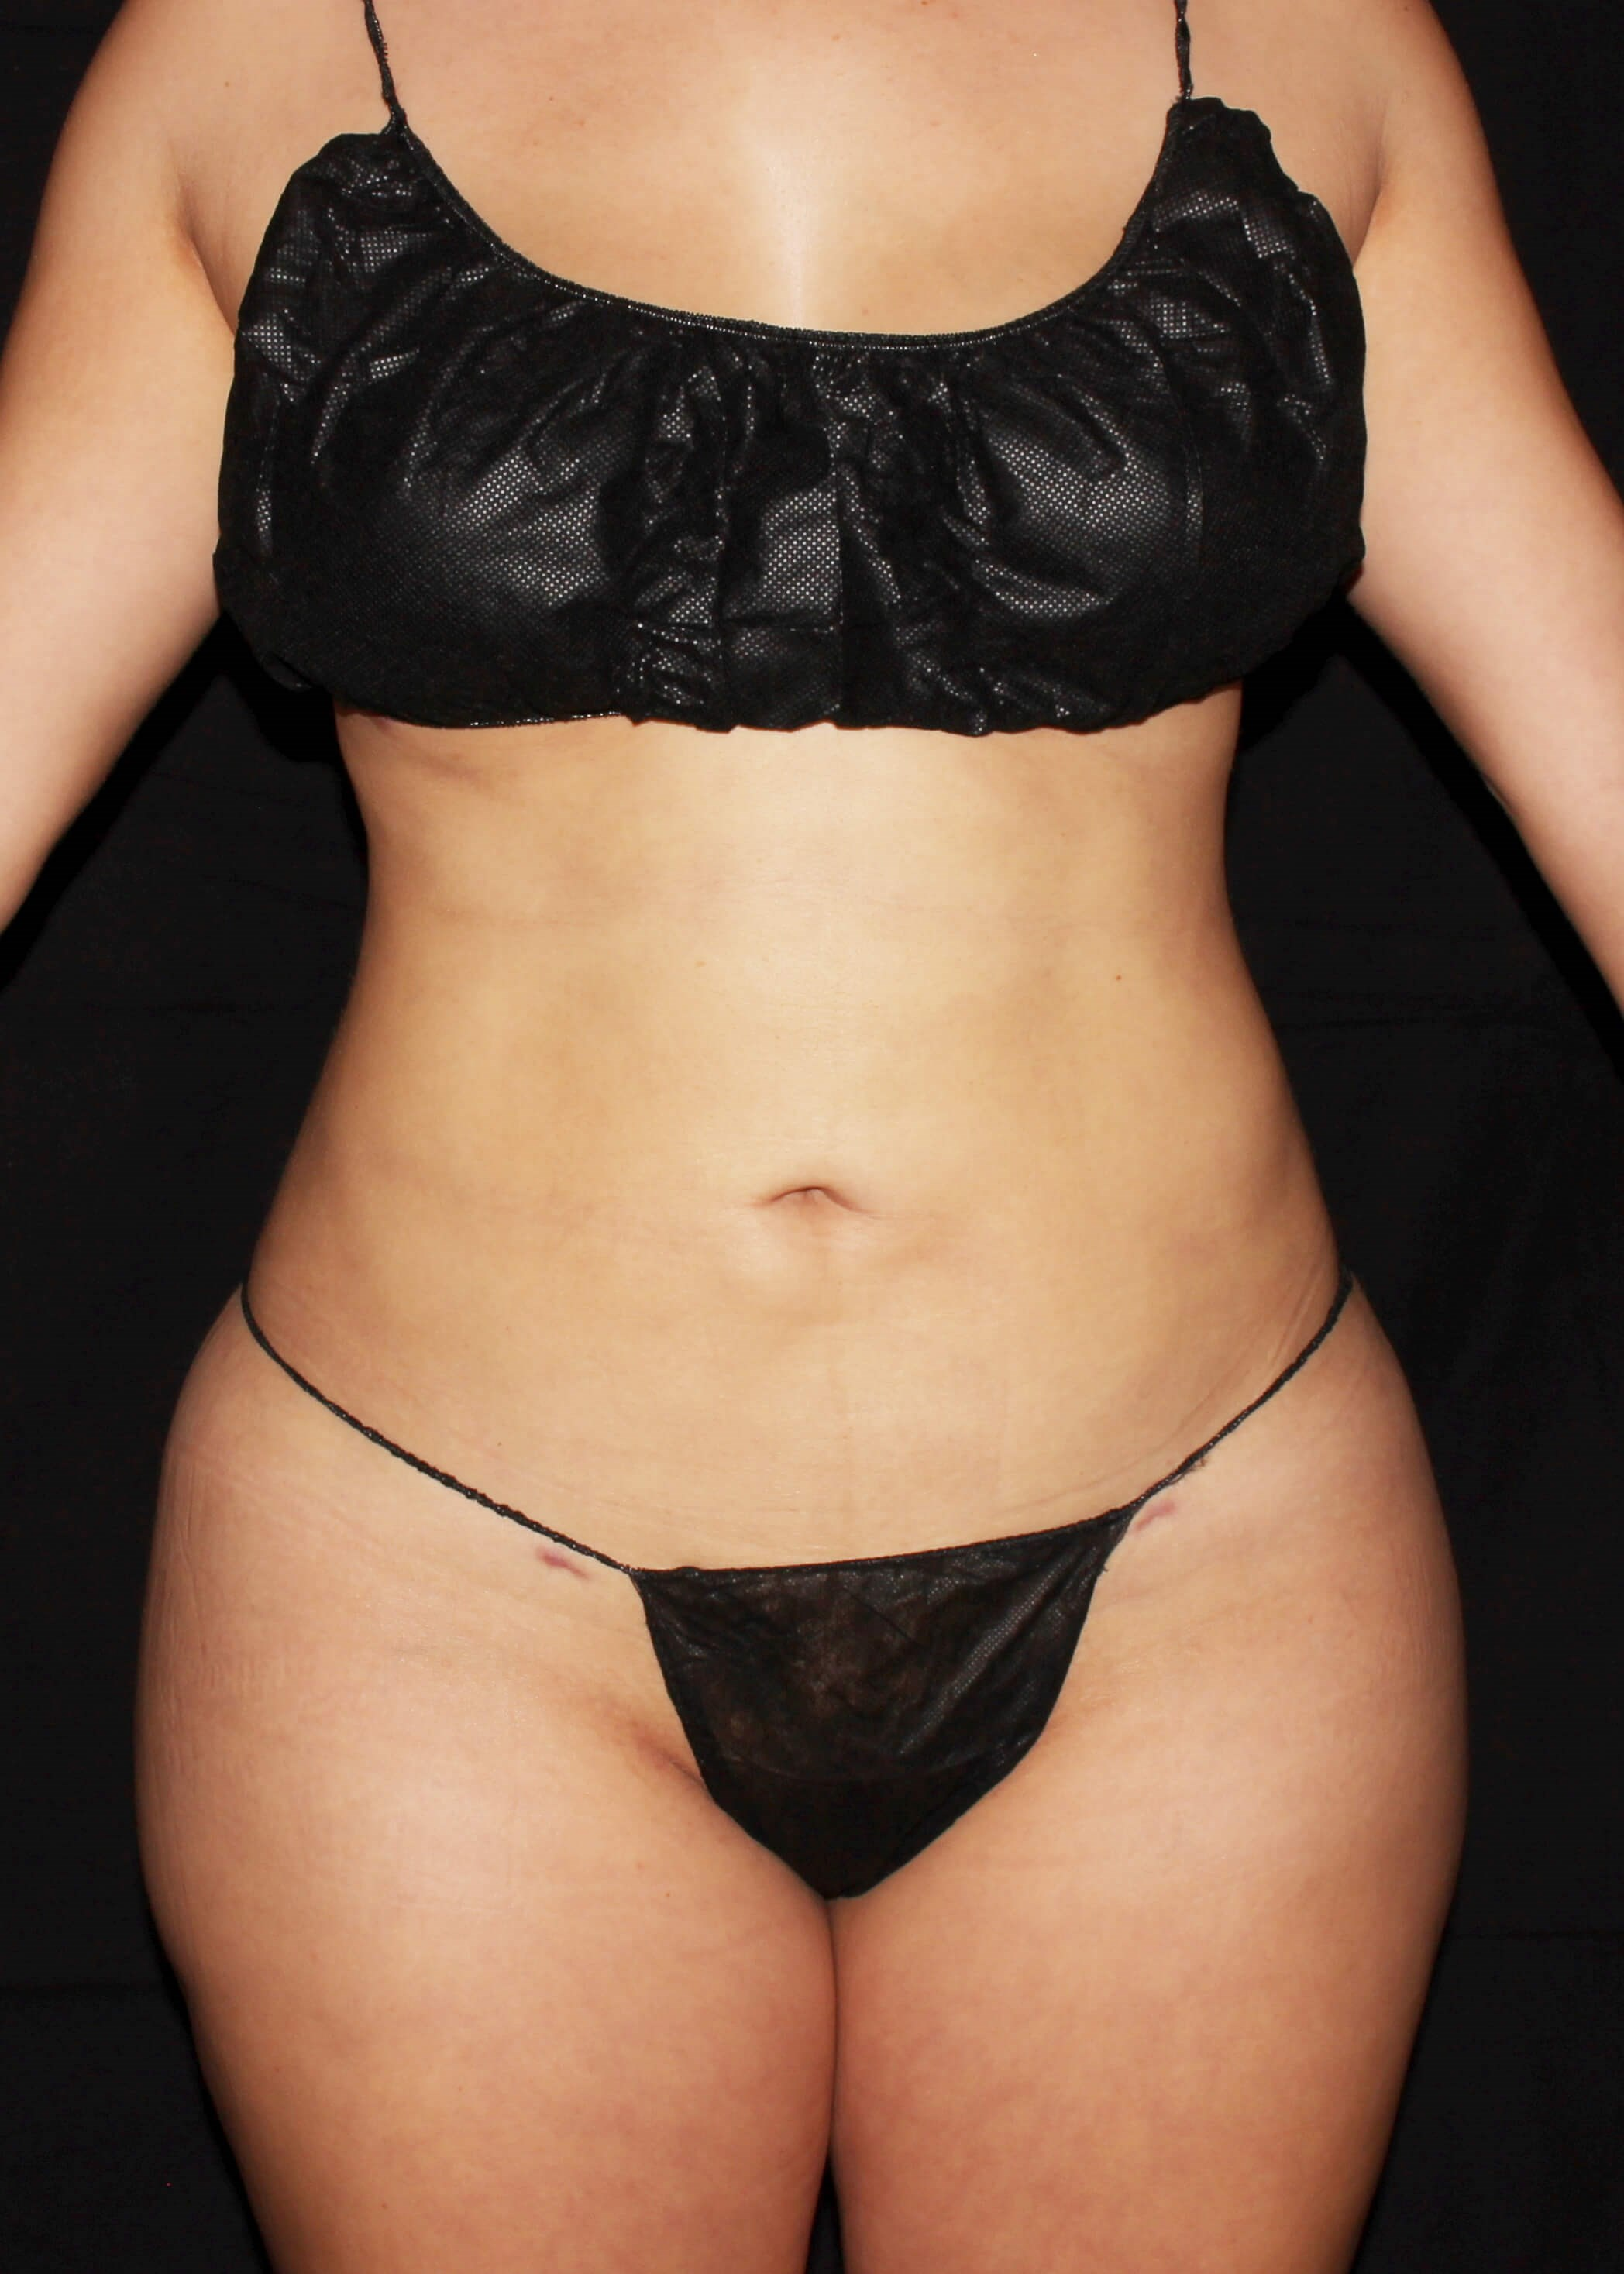 Full Torso Liposuction After - Full Torso Lipo and safer BBL